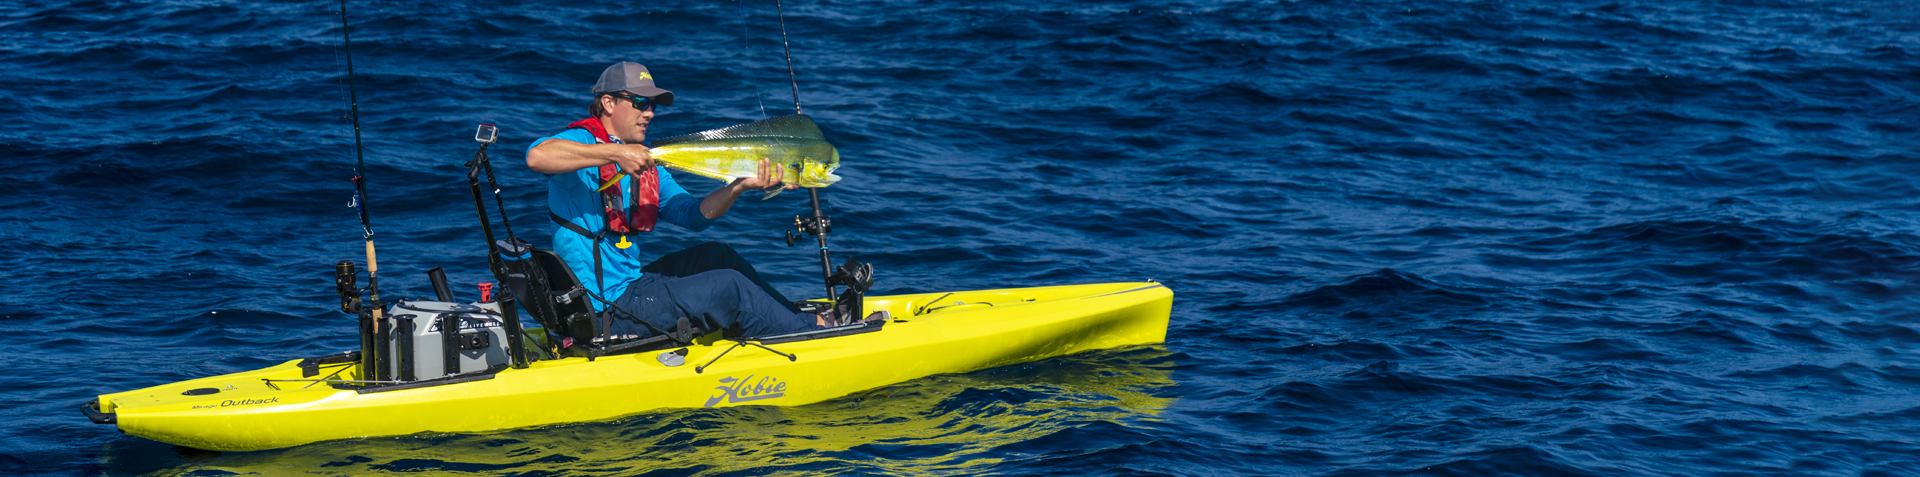 Kayaks: Mirage Outback by Hobie - Image 2692